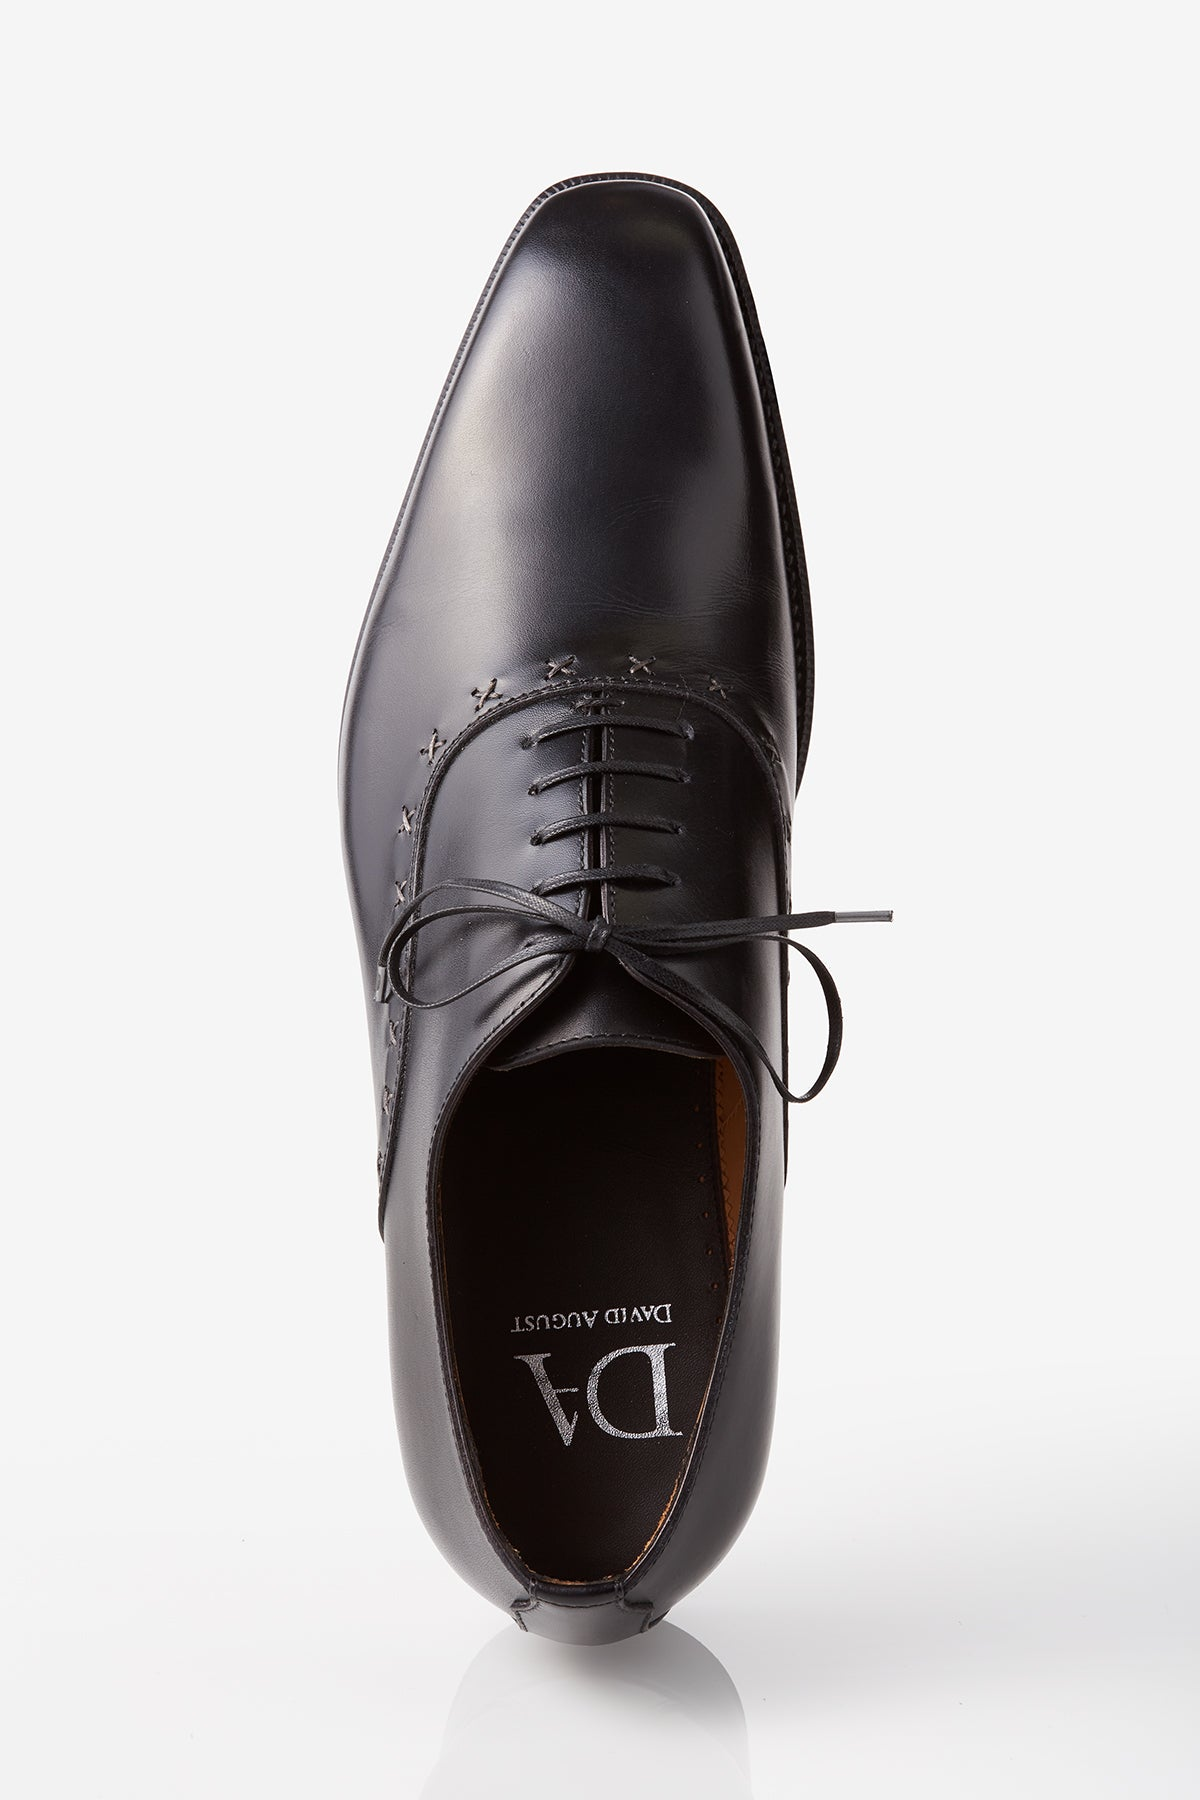 David August Leather Lace Up Cross Stitched Oxfords in Black Di Bianco